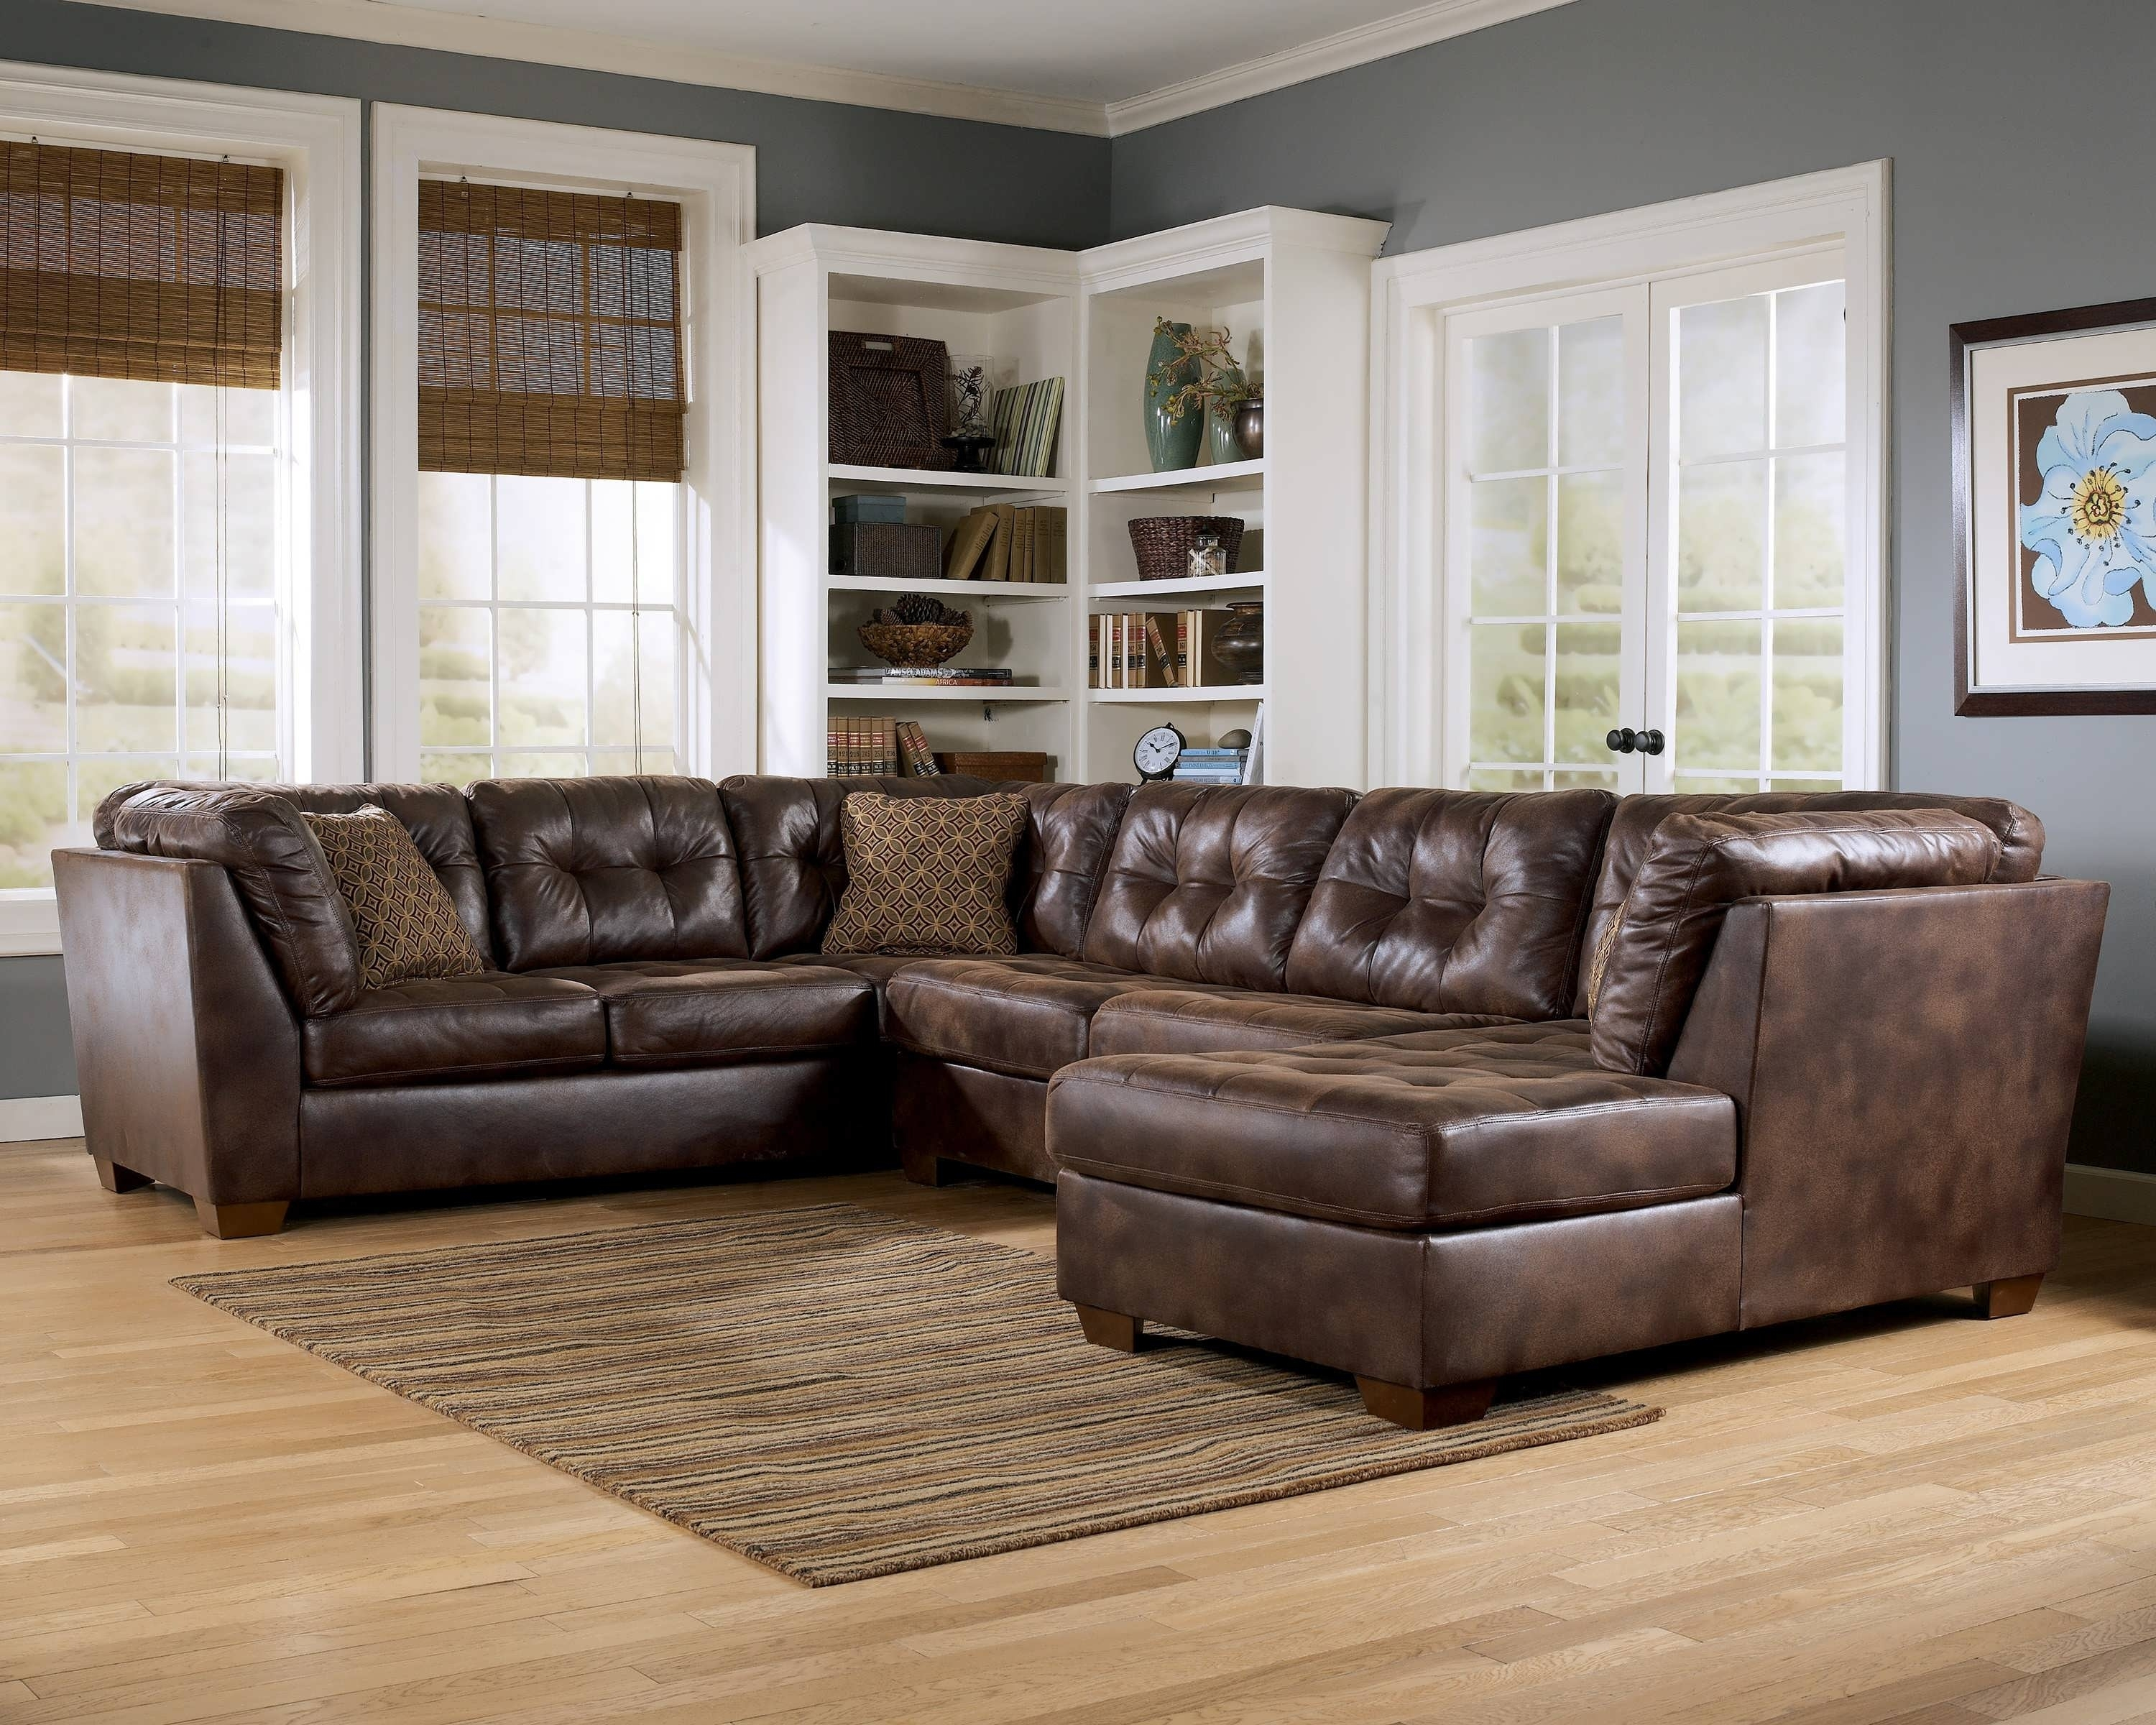 Sofa Leather Sectional Sofas Collection Of Brown Black Couch For for Memphis Tn Sectional Sofas (Image 9 of 10)